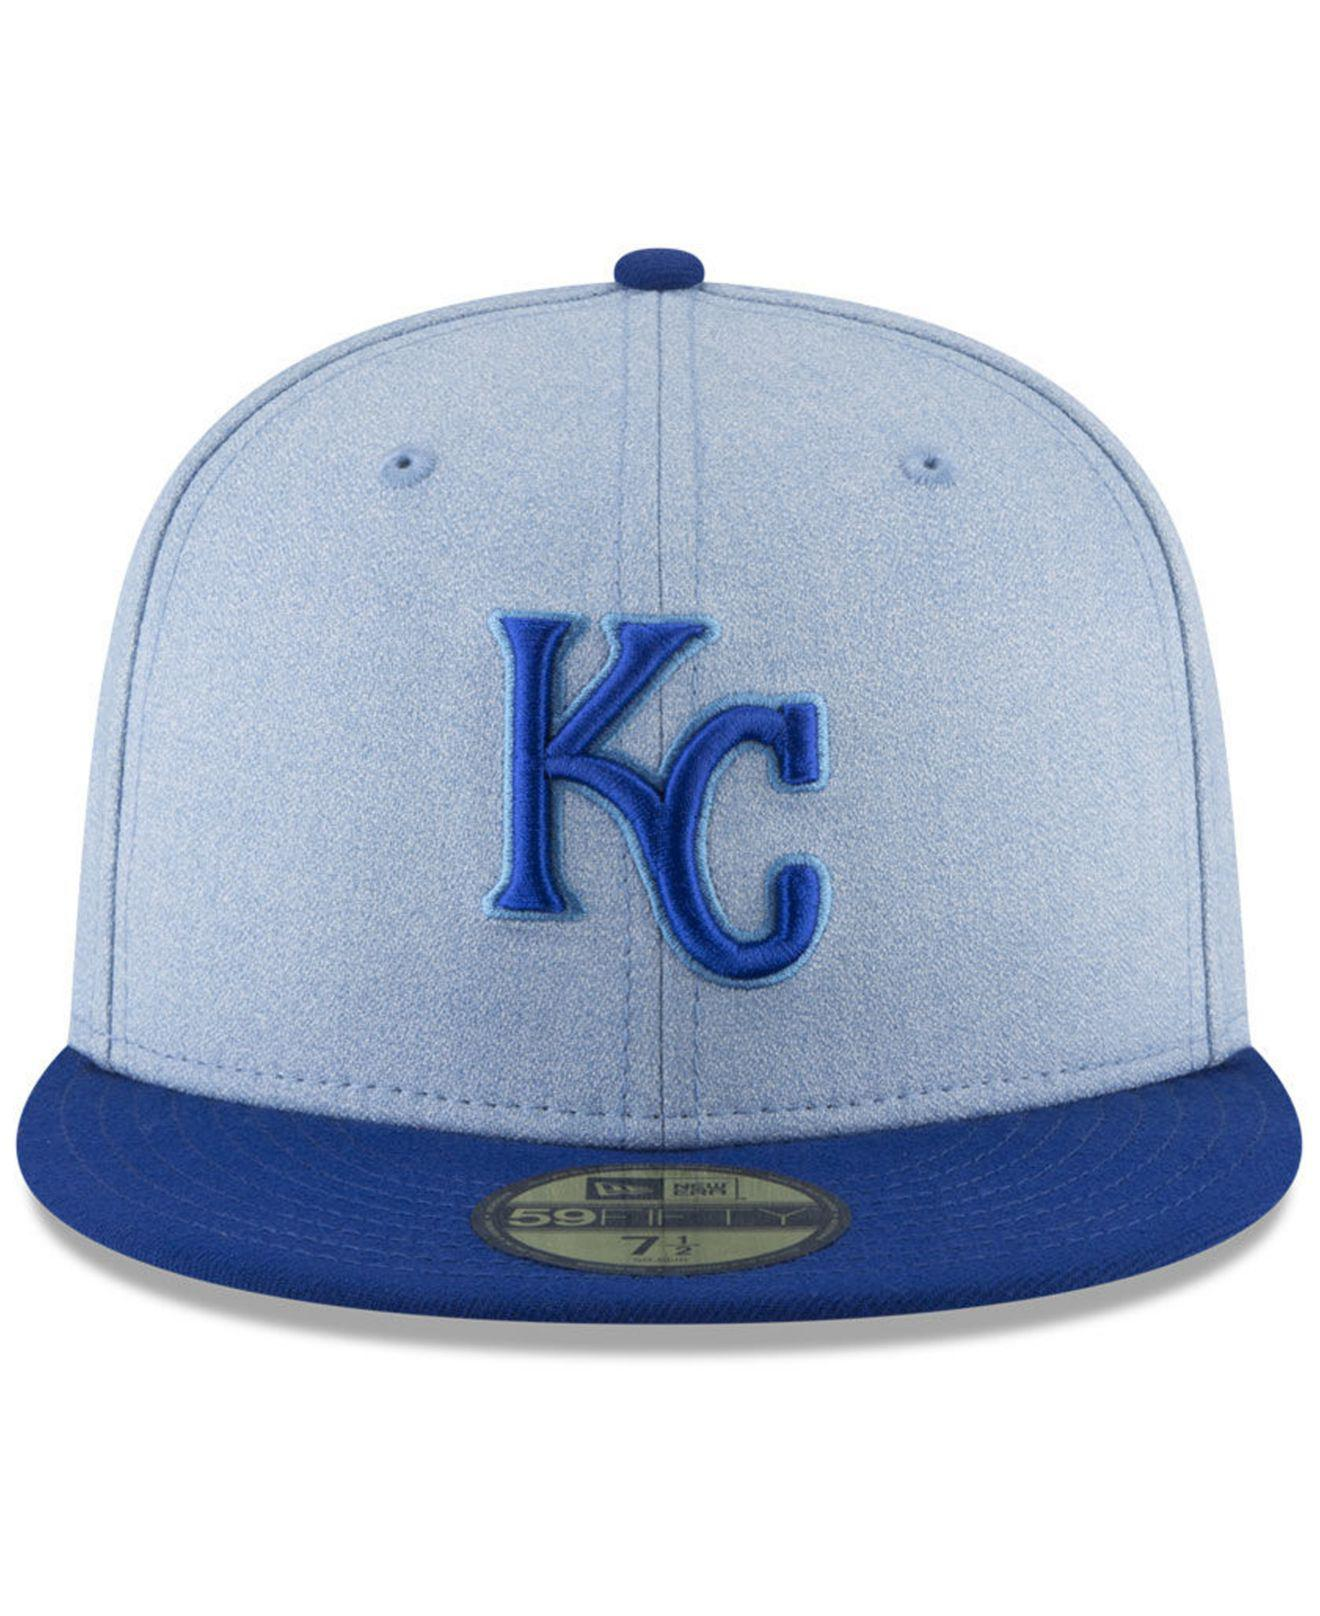 Lyst - Ktz Kansas City Royals Father s Day 59fifty Fitted Cap 2018 in Blue  for Men 6359a2be4ed2